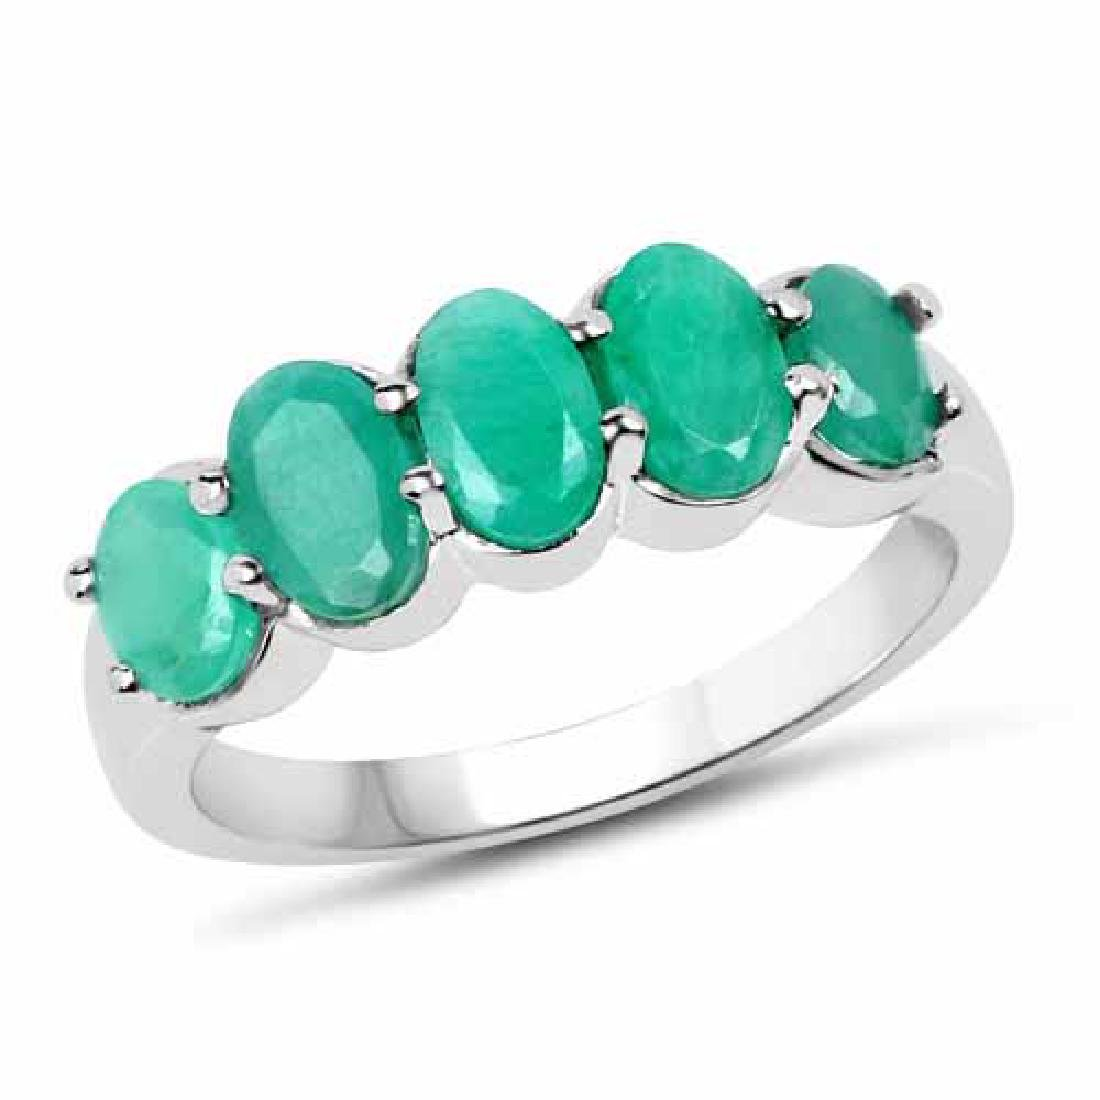 1.78 Carat Genuine Emerald .925 Sterling Silver Ring